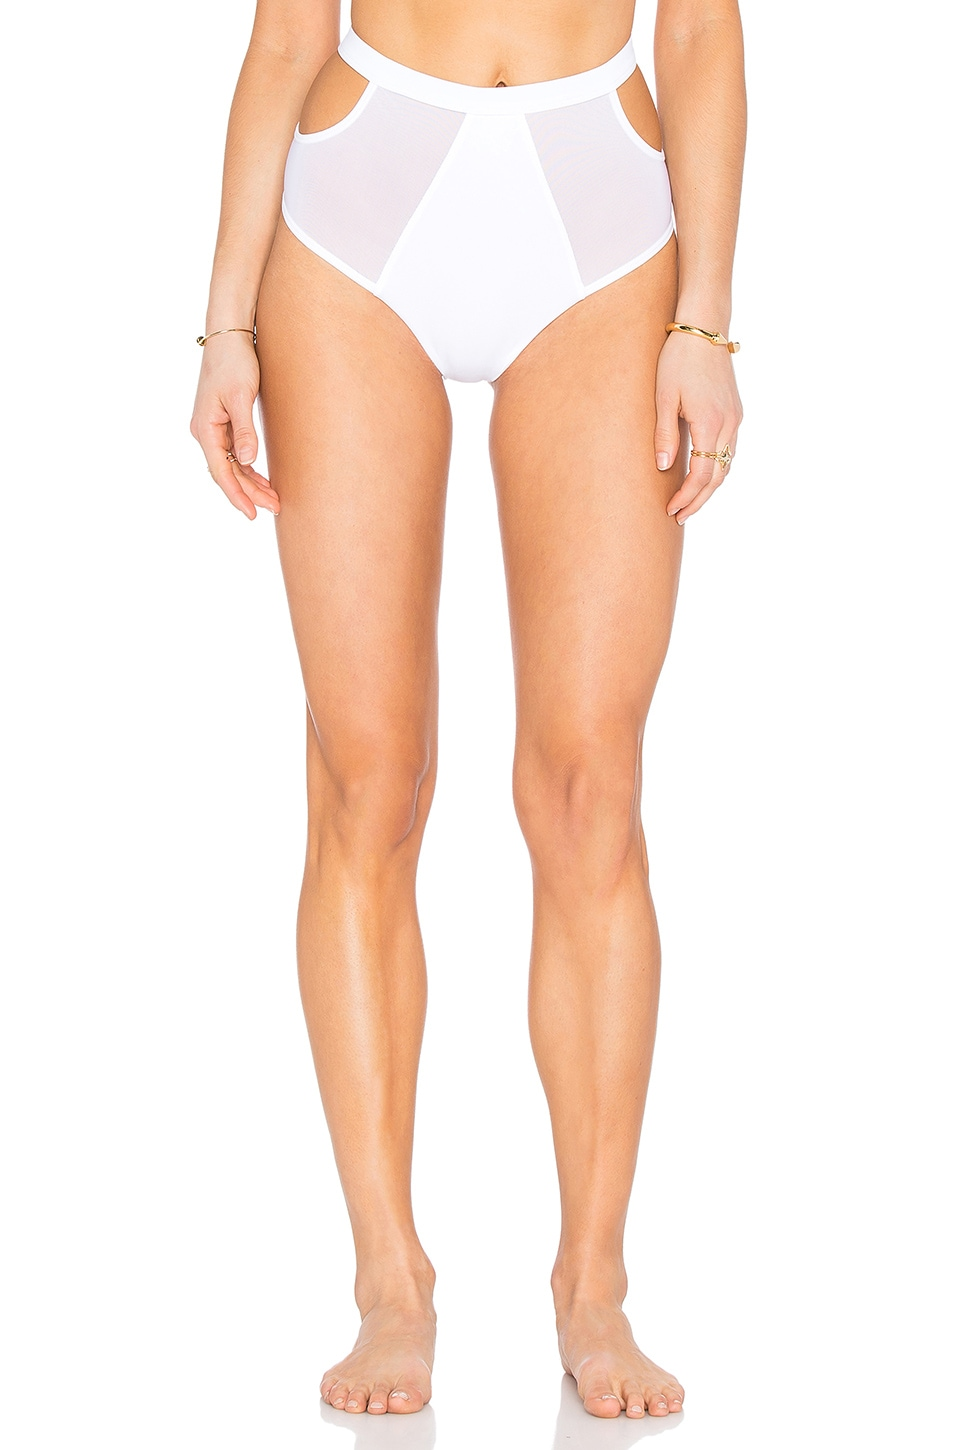 F E L L A Finn High Waist Bikini Bottom in White